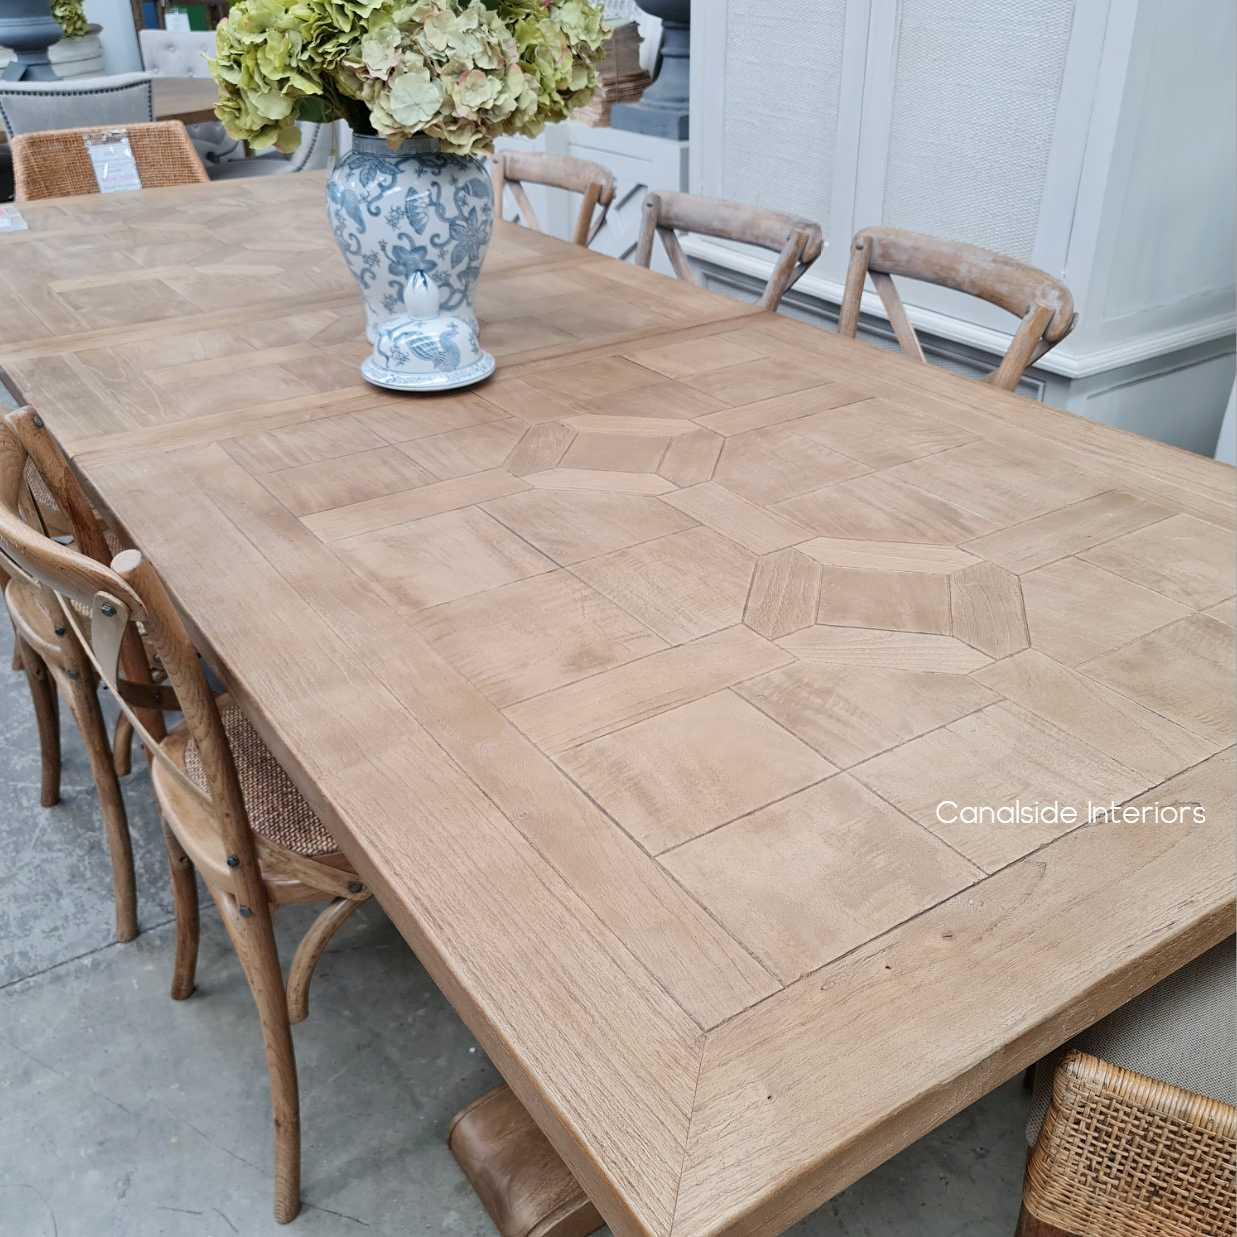 Como Parquetry Double Extension Dining Table tables, hamptons, hamptons, hampton table, provincial, plantation, dining tables, trestle base, dining room banquet